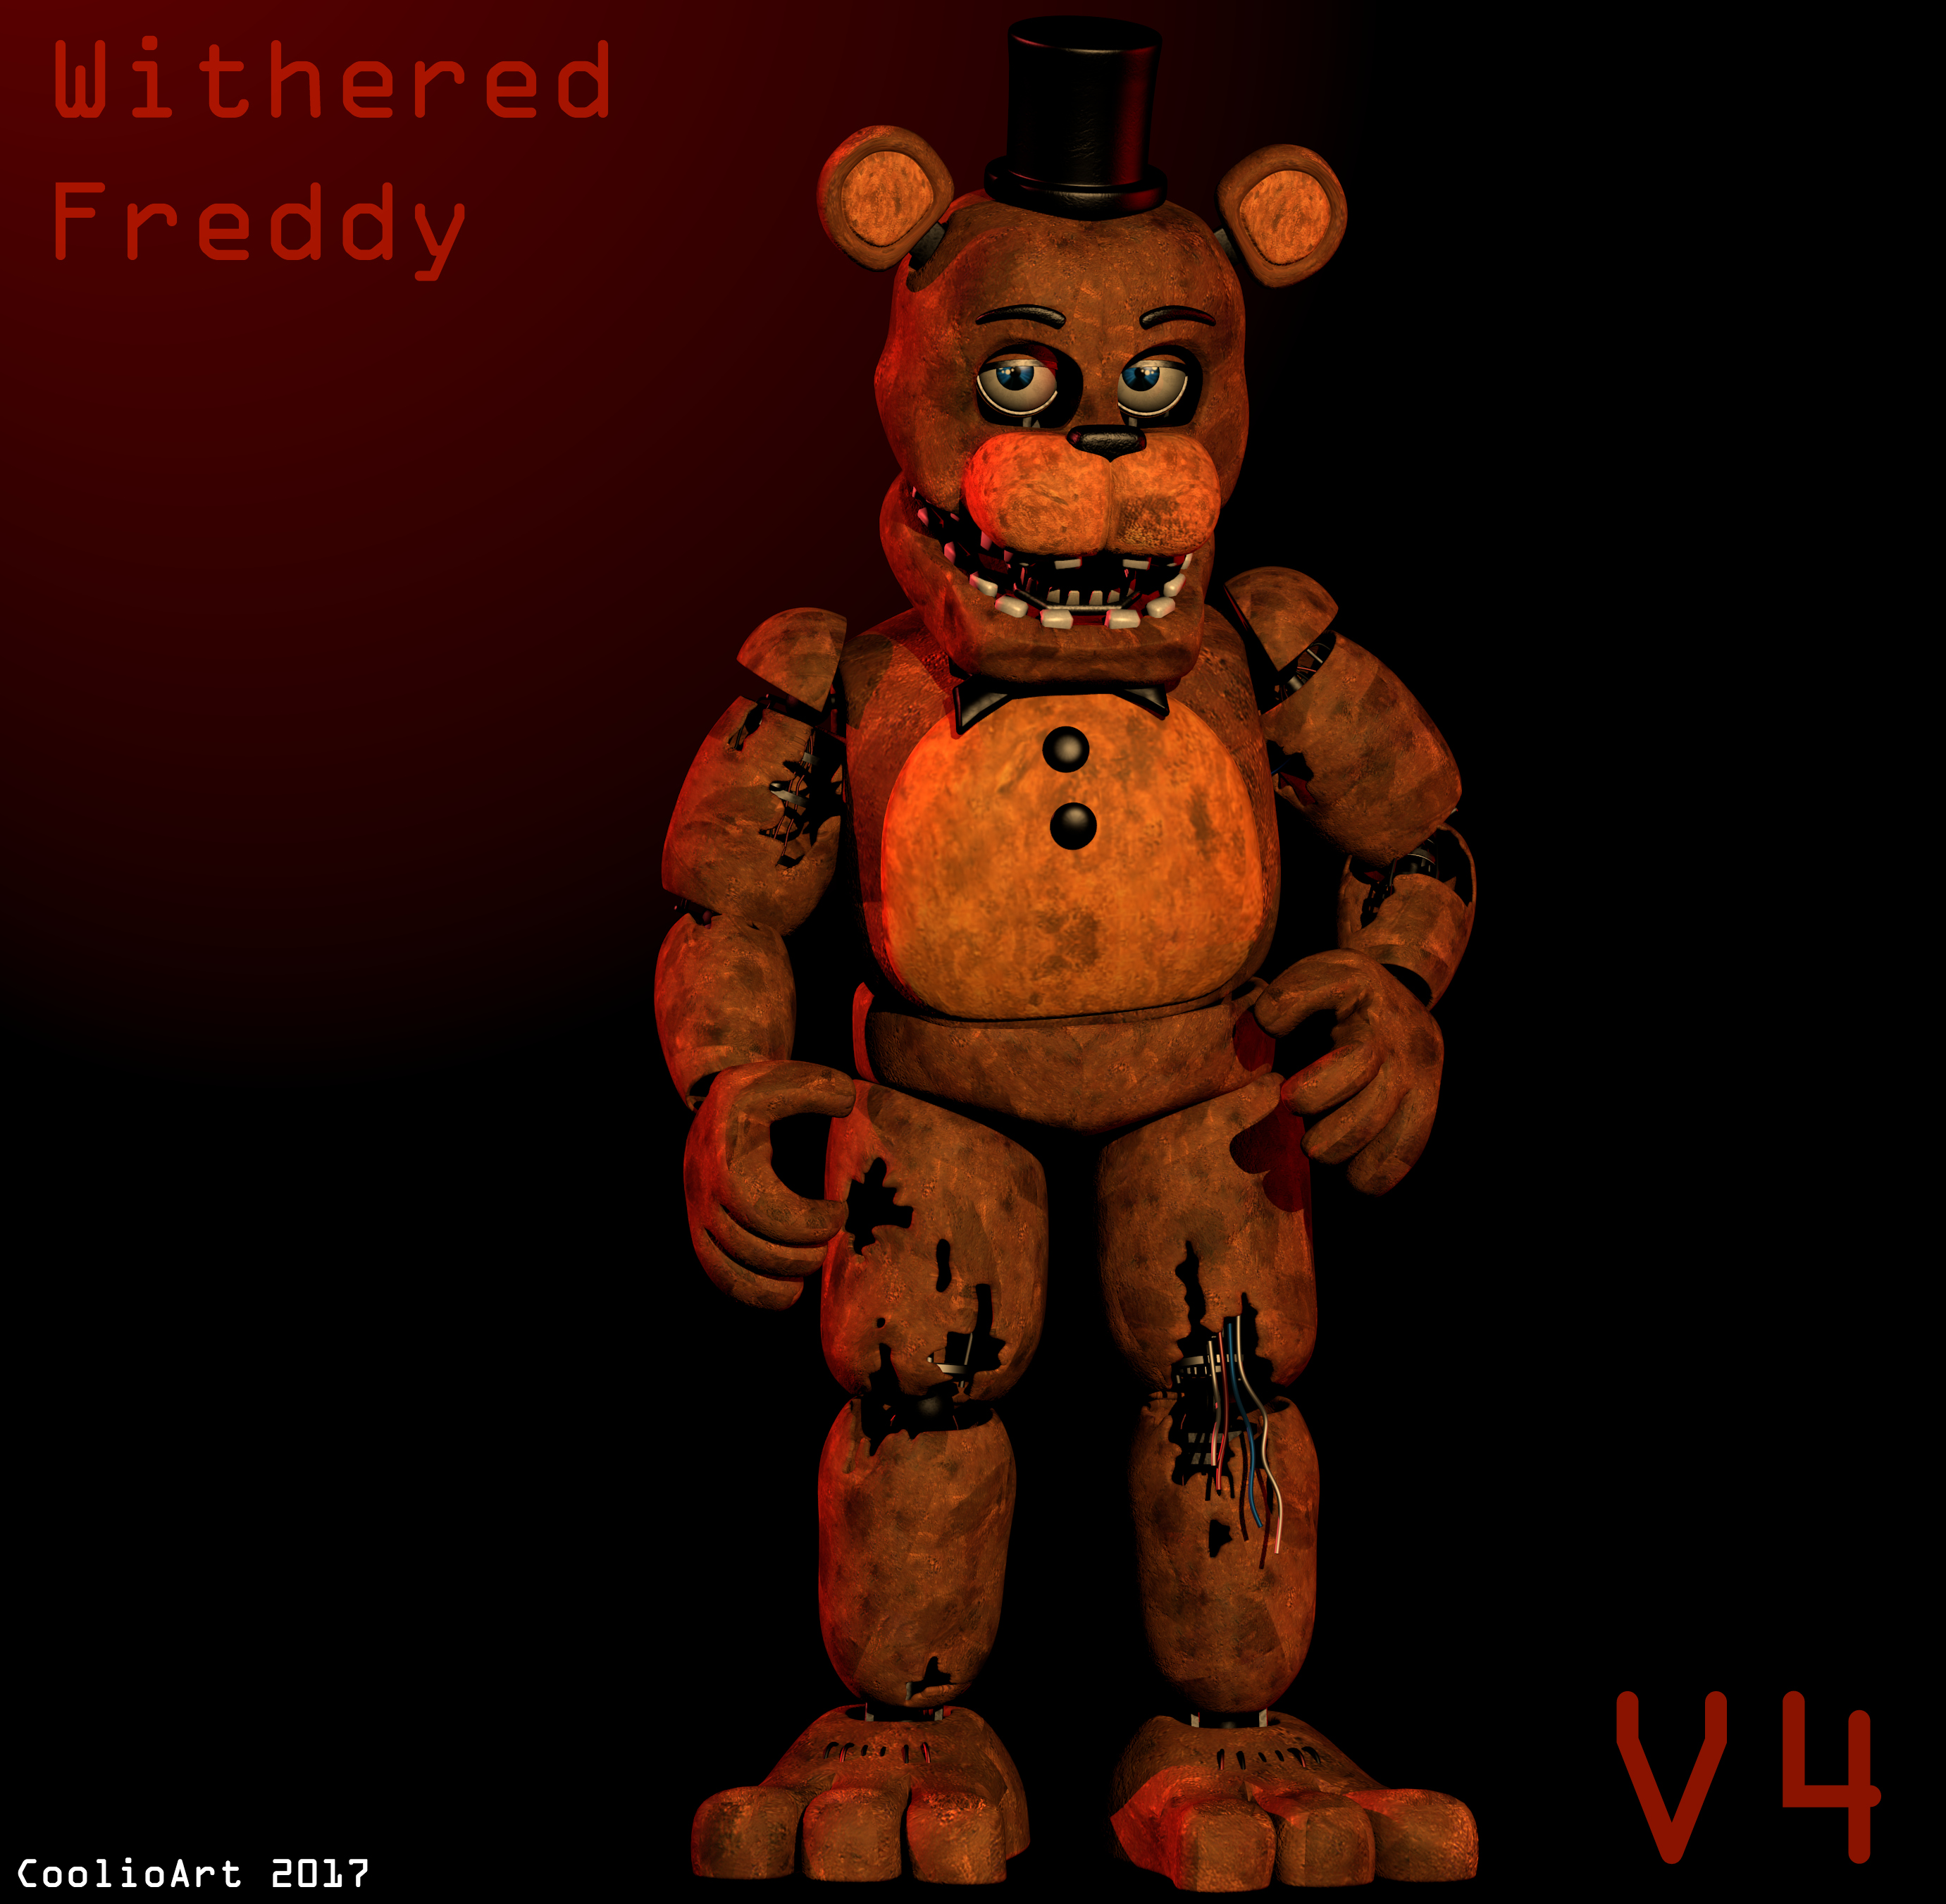 Blender Withered Freddy V4 By CoolioArt On DeviantArt